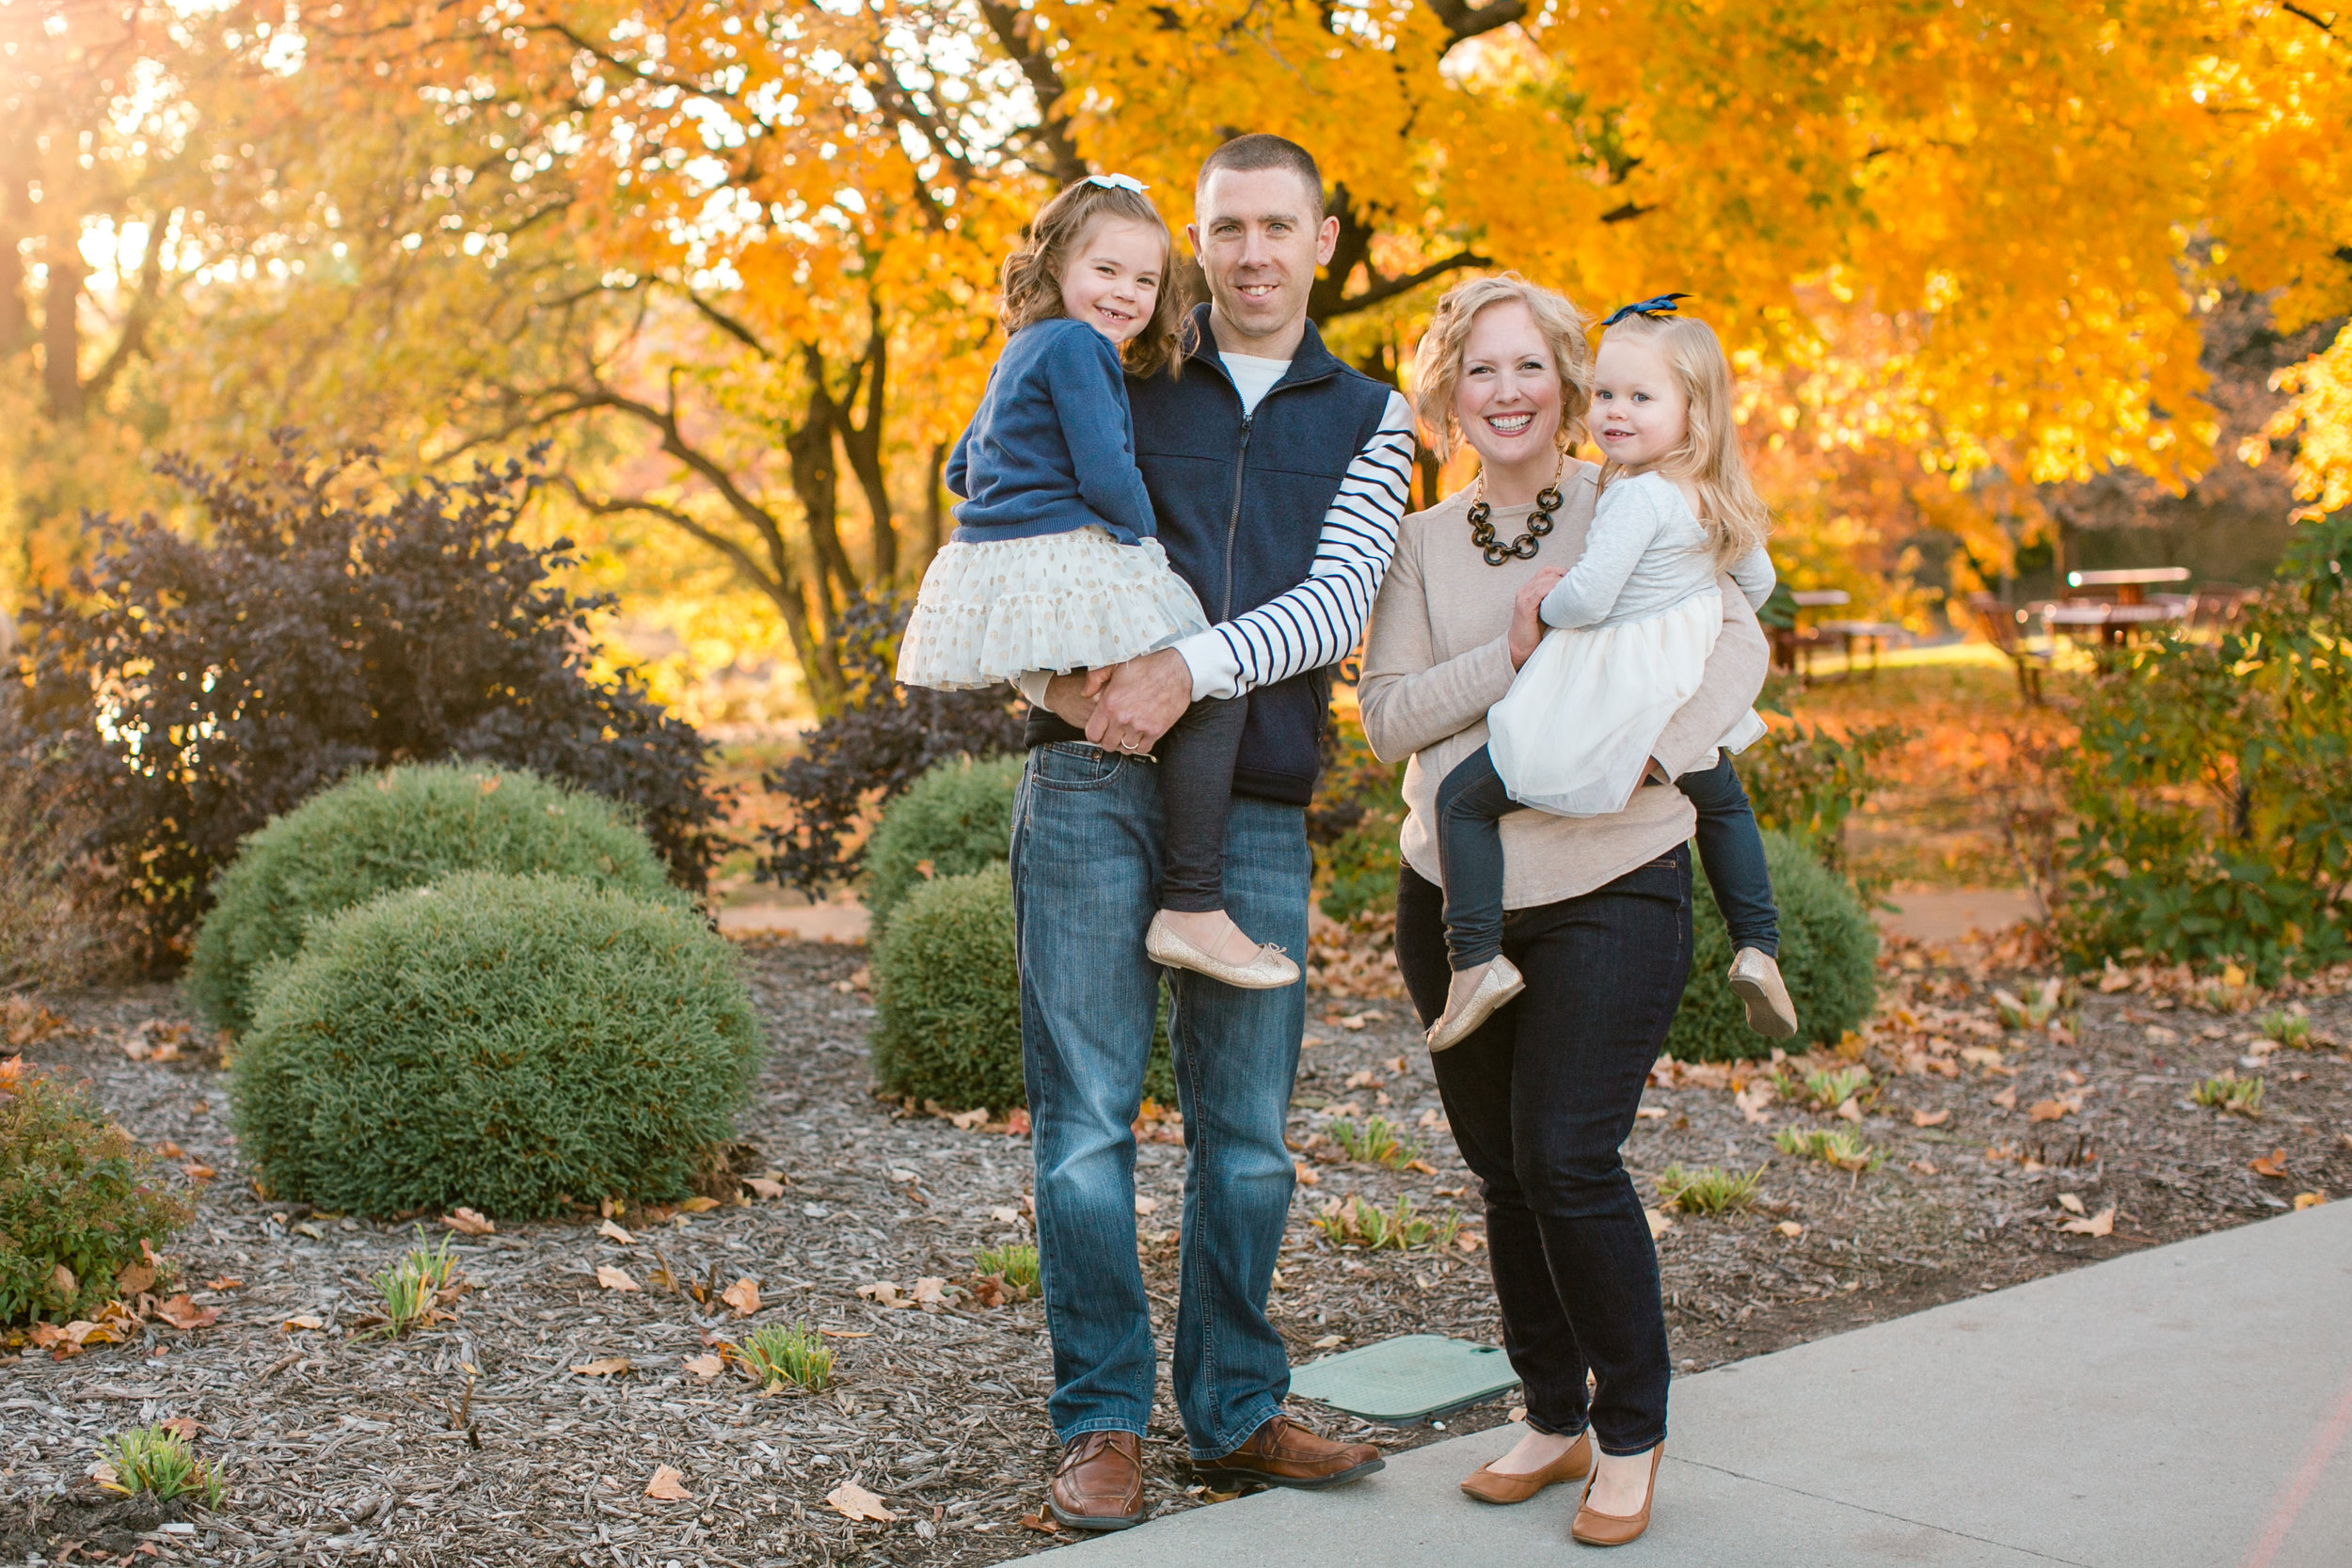 des moines central iowa ames ankeny family photographers good with kids